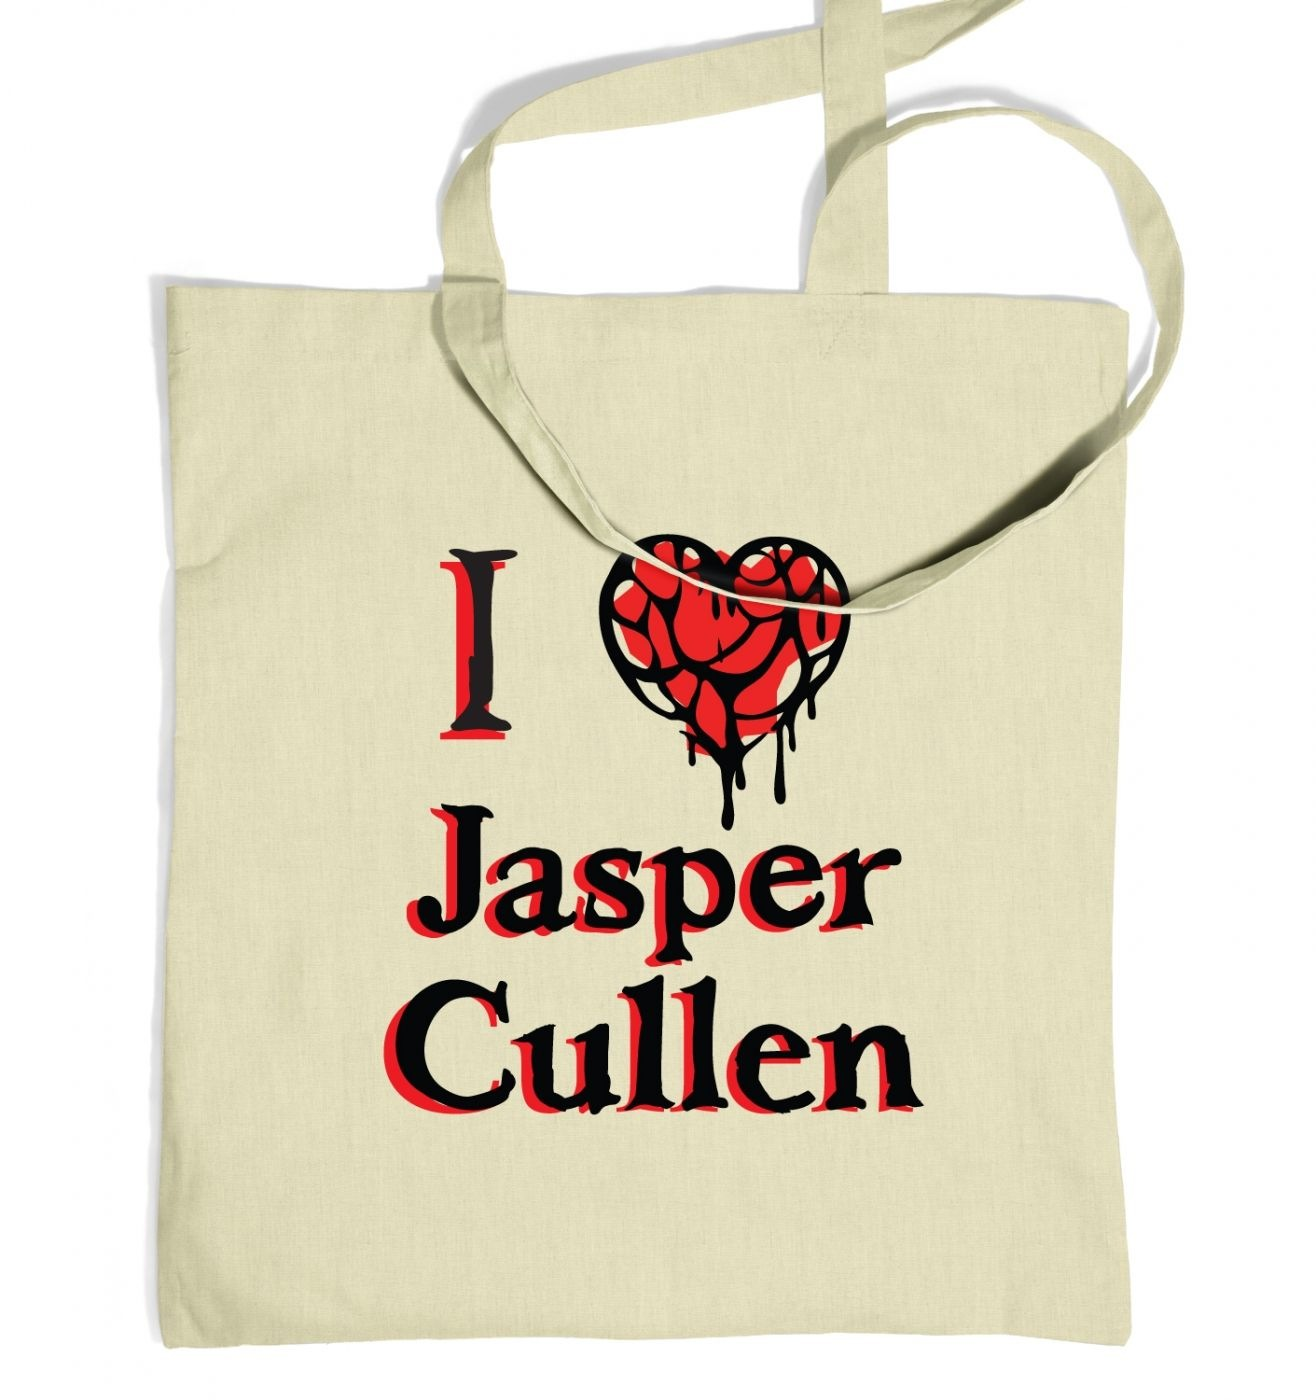 I heart Jasper Cullen tote bag - Inspired by Twilight